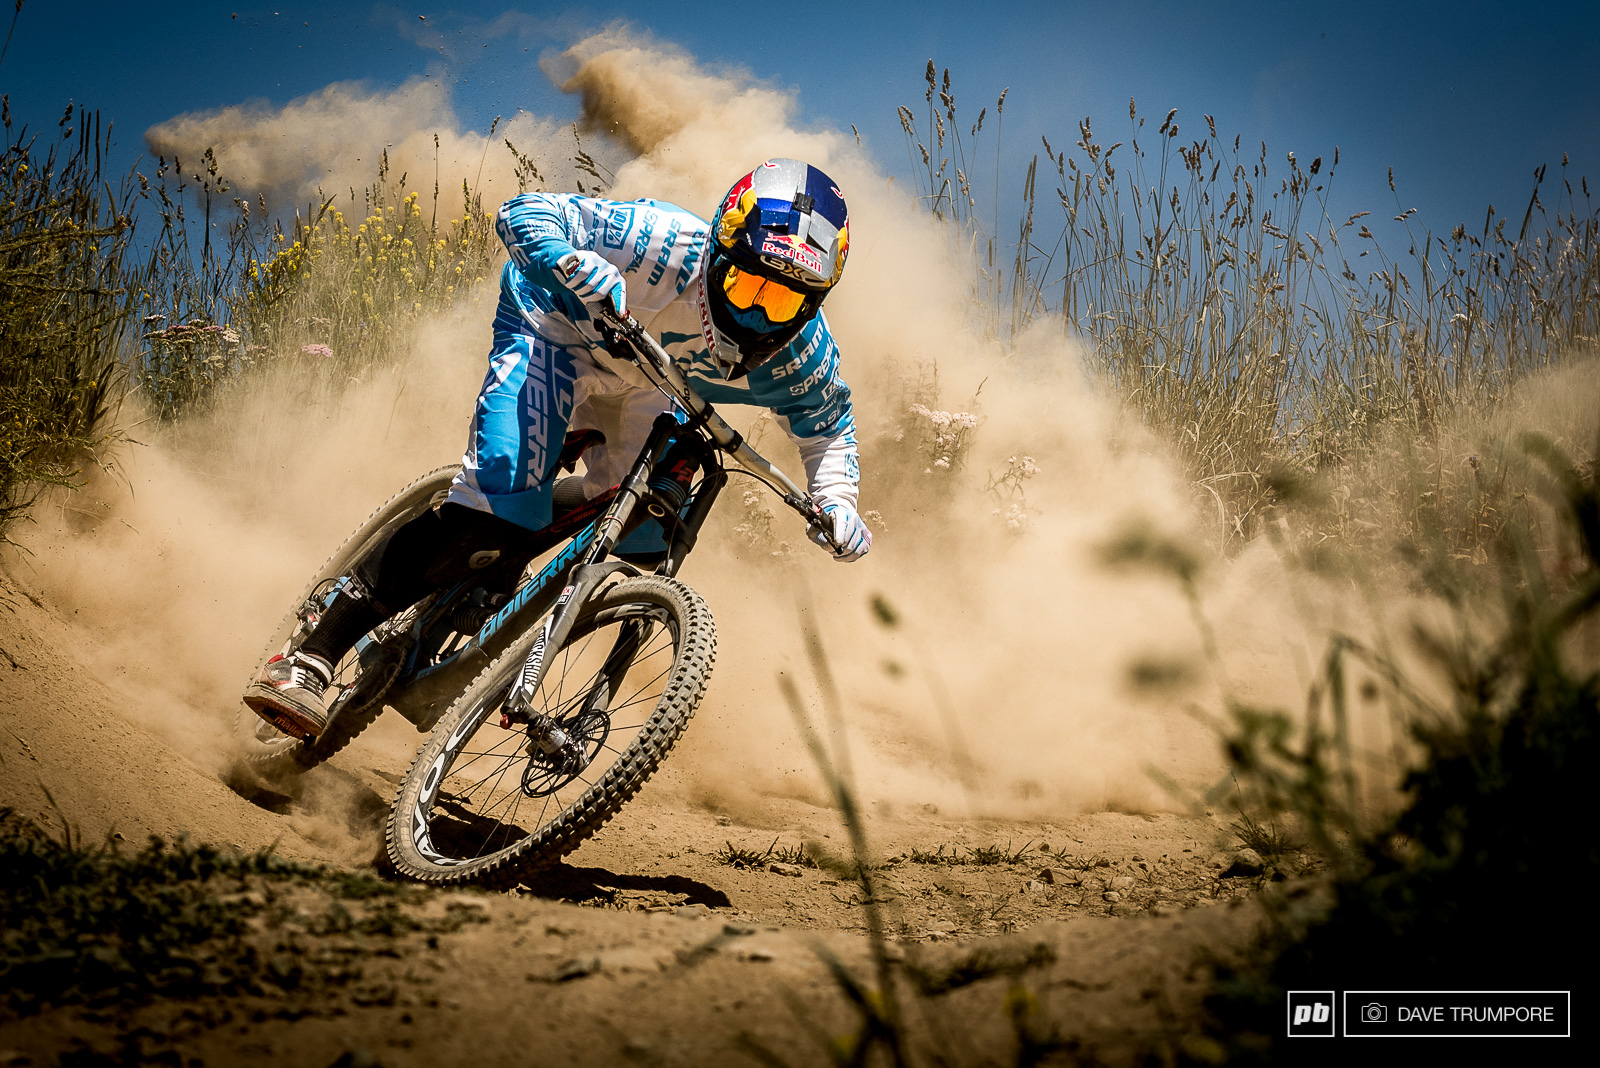 Shots from the Loic Bruni Interview by Dave Trumpore